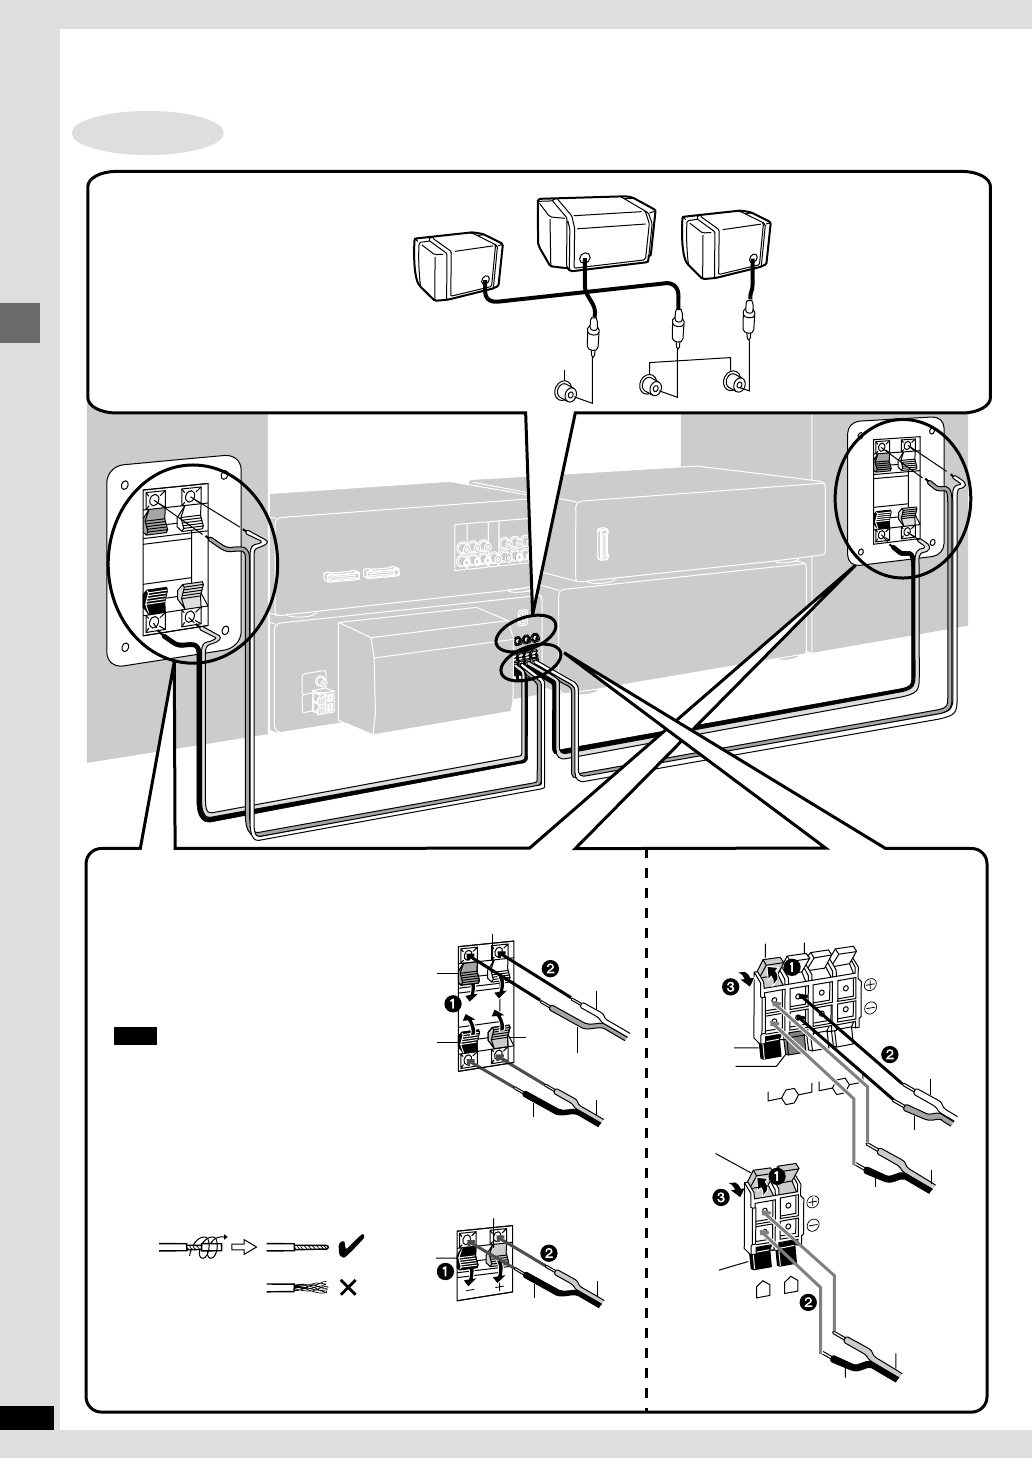 12e946b7 a4c1 4d4c b7bf 762cd65ba4cd bg6 page 6 of technics stereo system sc eh780 user guide technics stereo wiring diagram at edmiracle.co